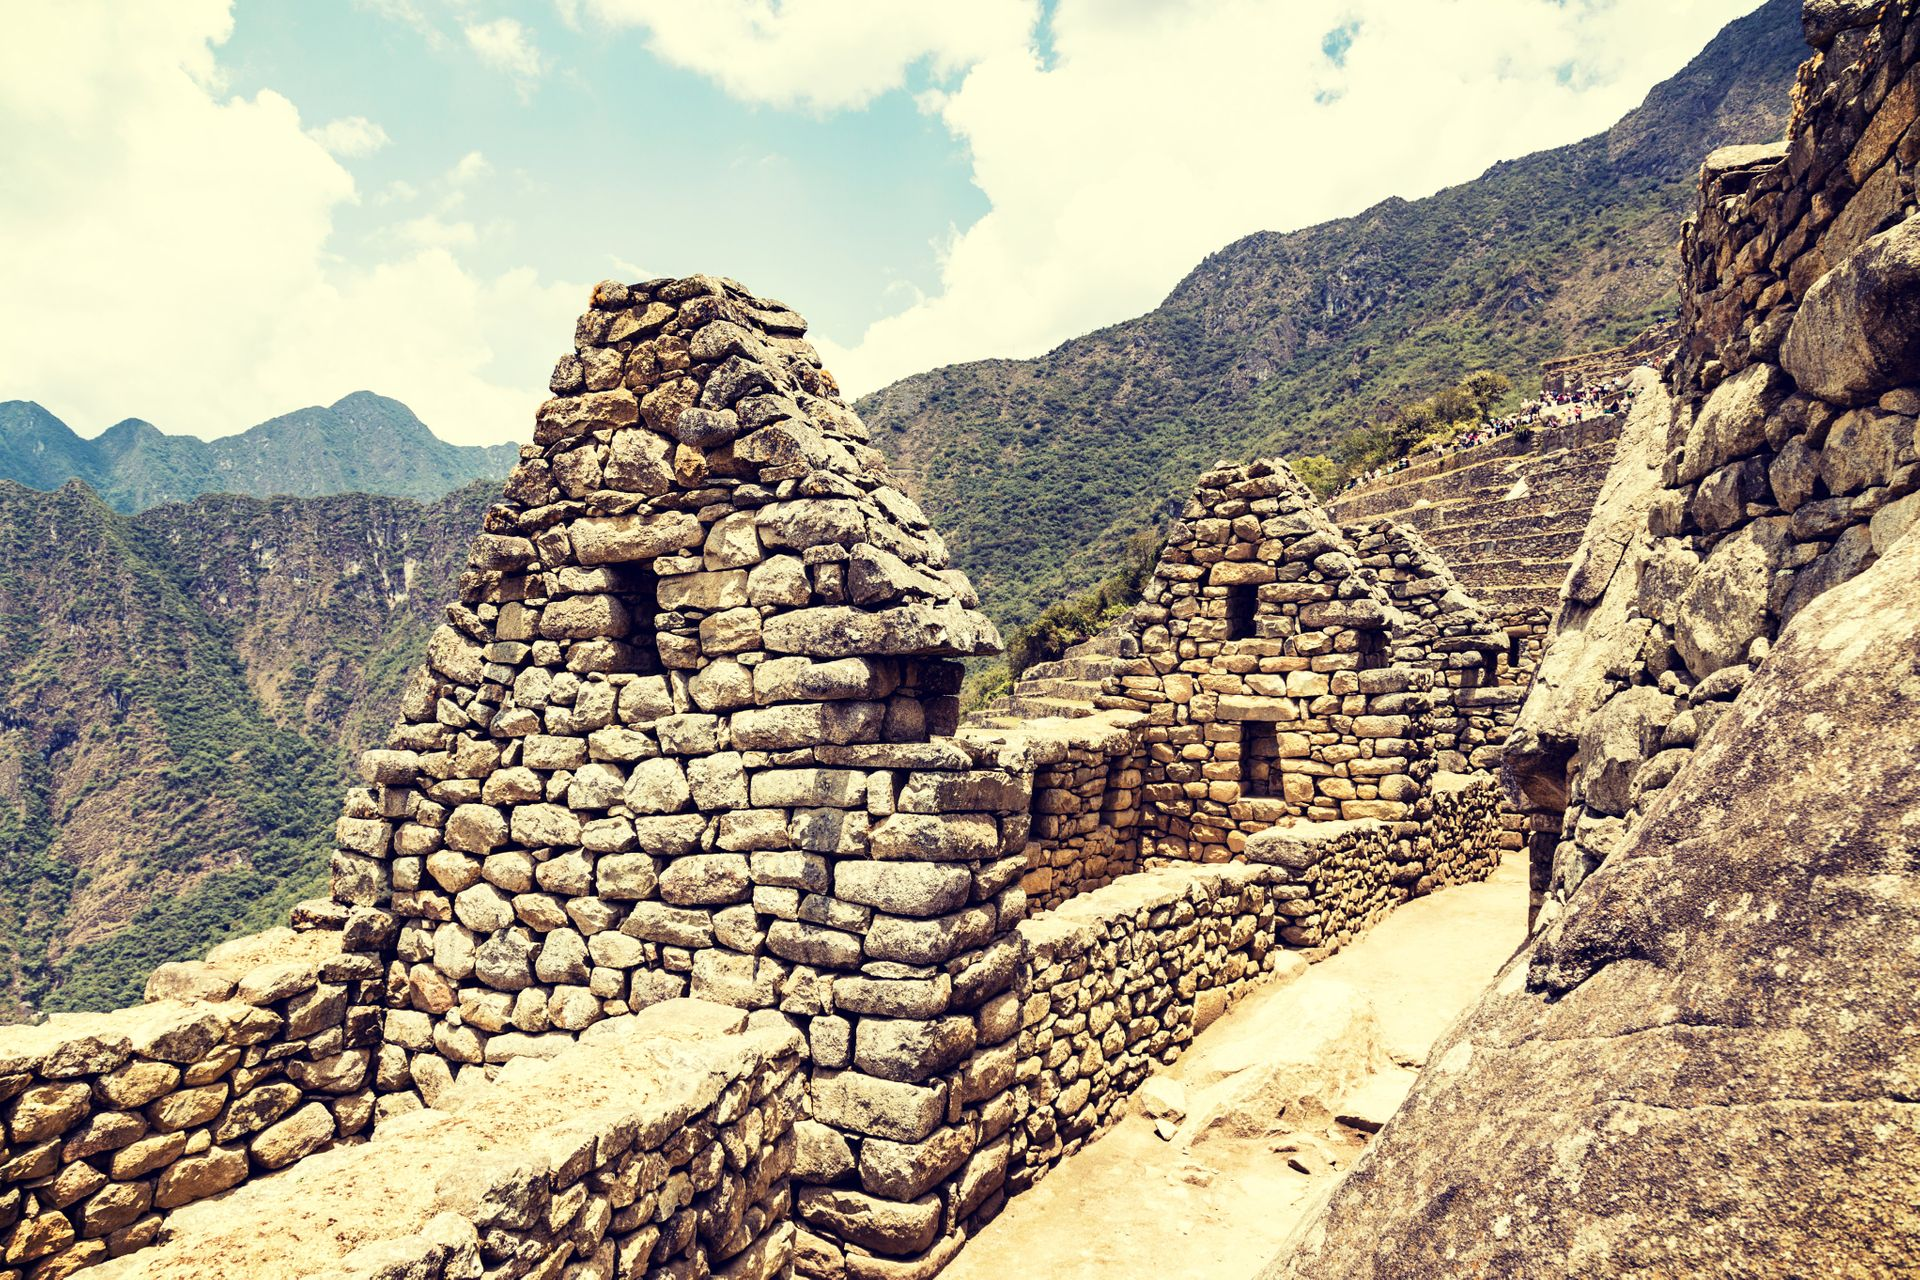 The Inca Trail Inca Trail, Machu Picchu, Cusco, Peru #cb647708-d107-4360-87cb-518a76cefe8f